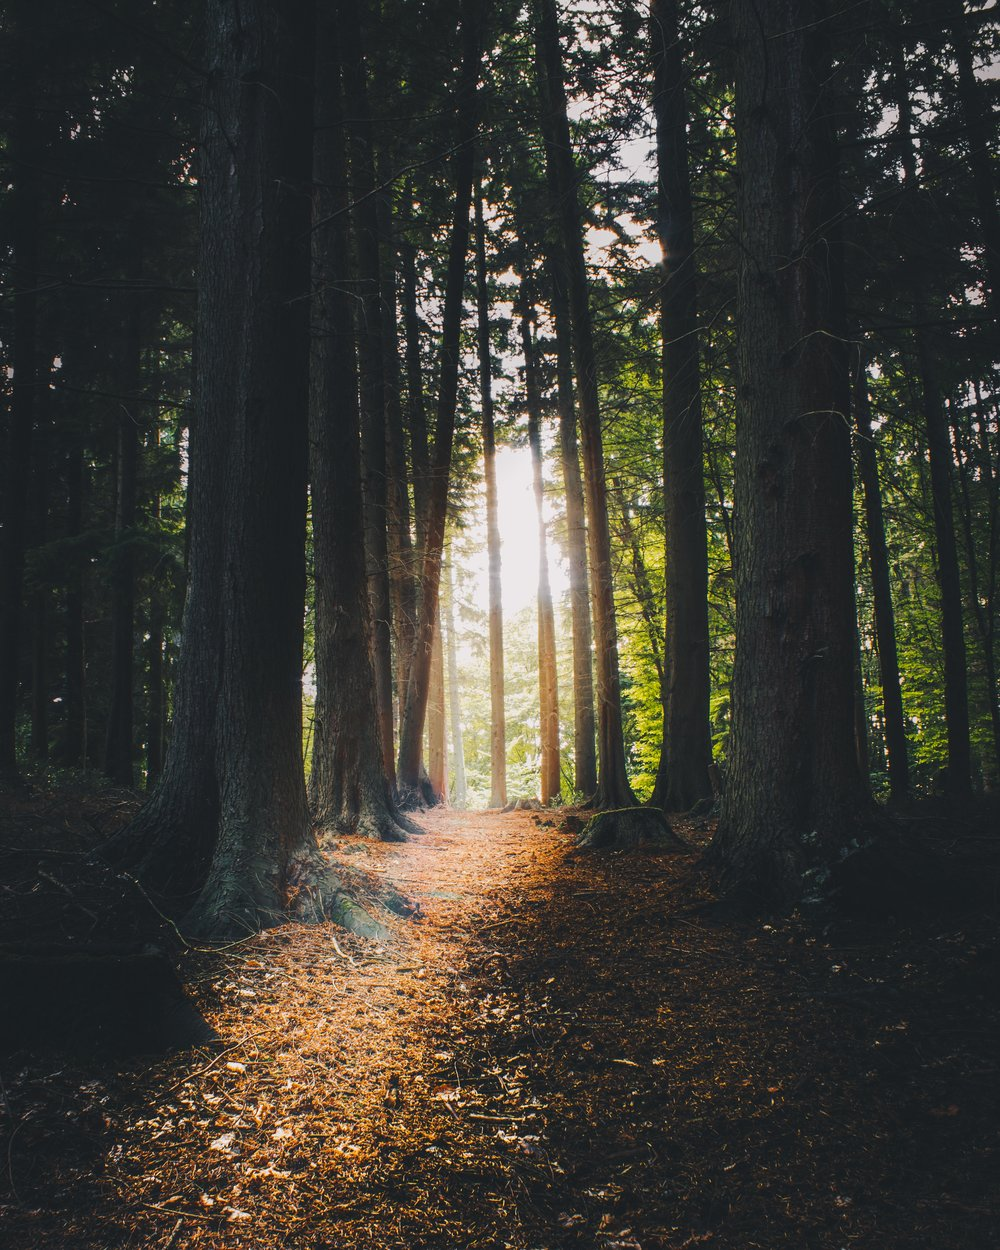 sunlit_forest_path.jpg